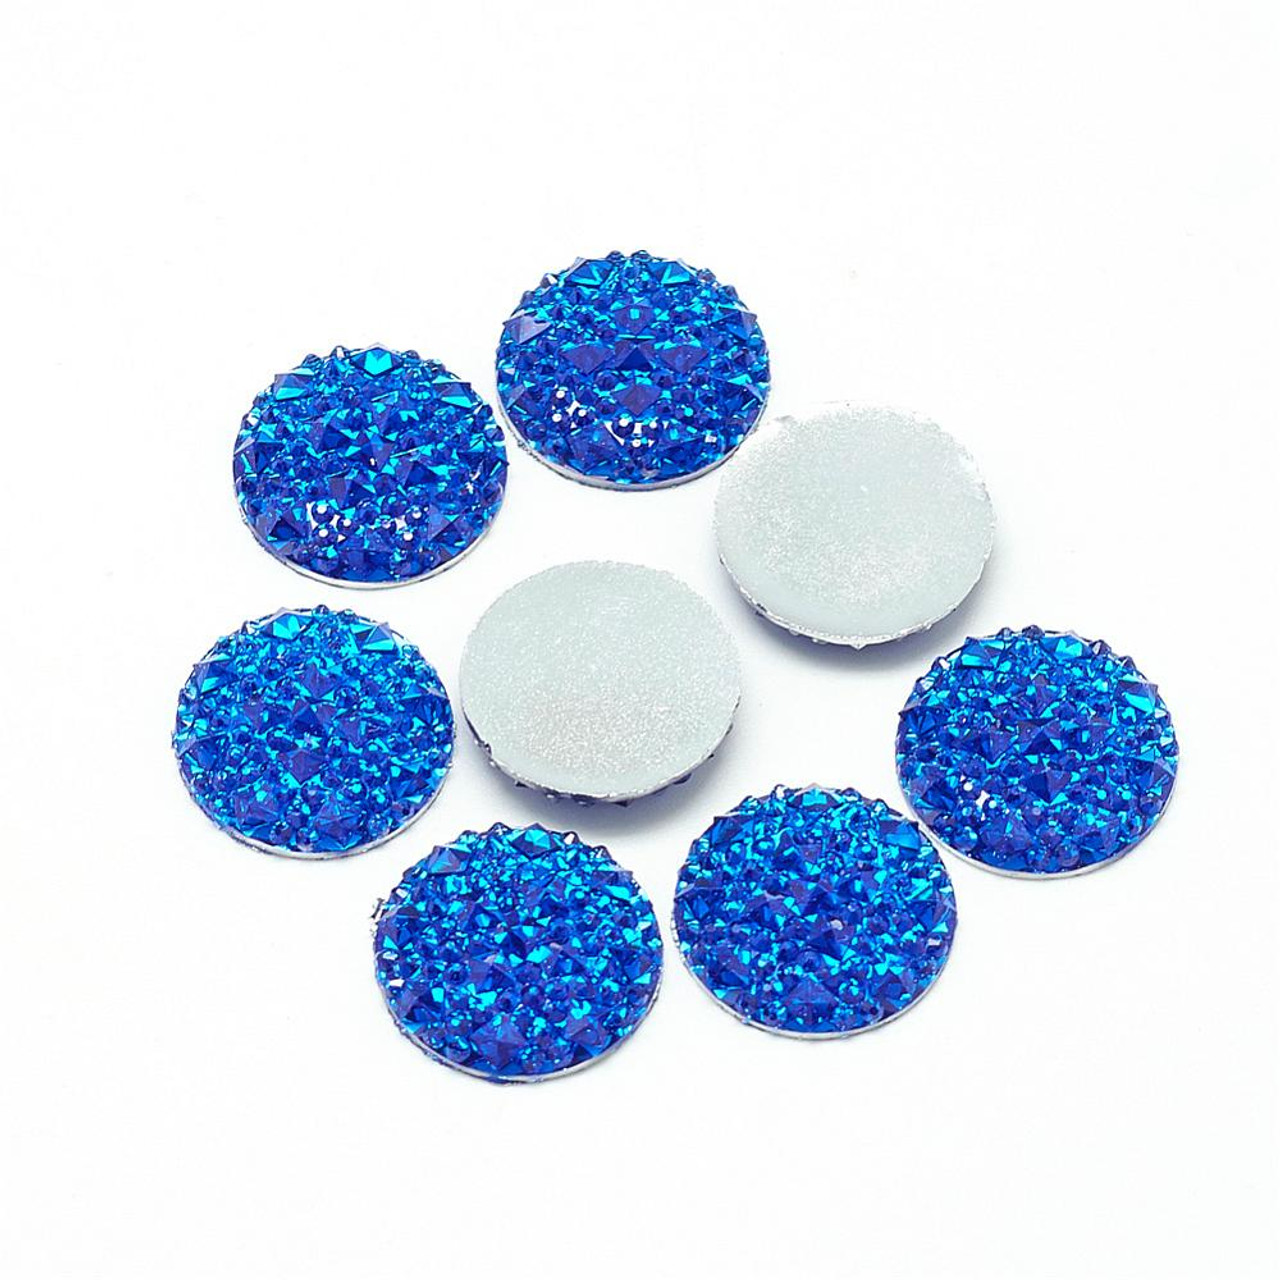 Resin Cabochons, Buttom Silver Plated, Half Round/Dome, Blue, 18x3.5mm (6pk)